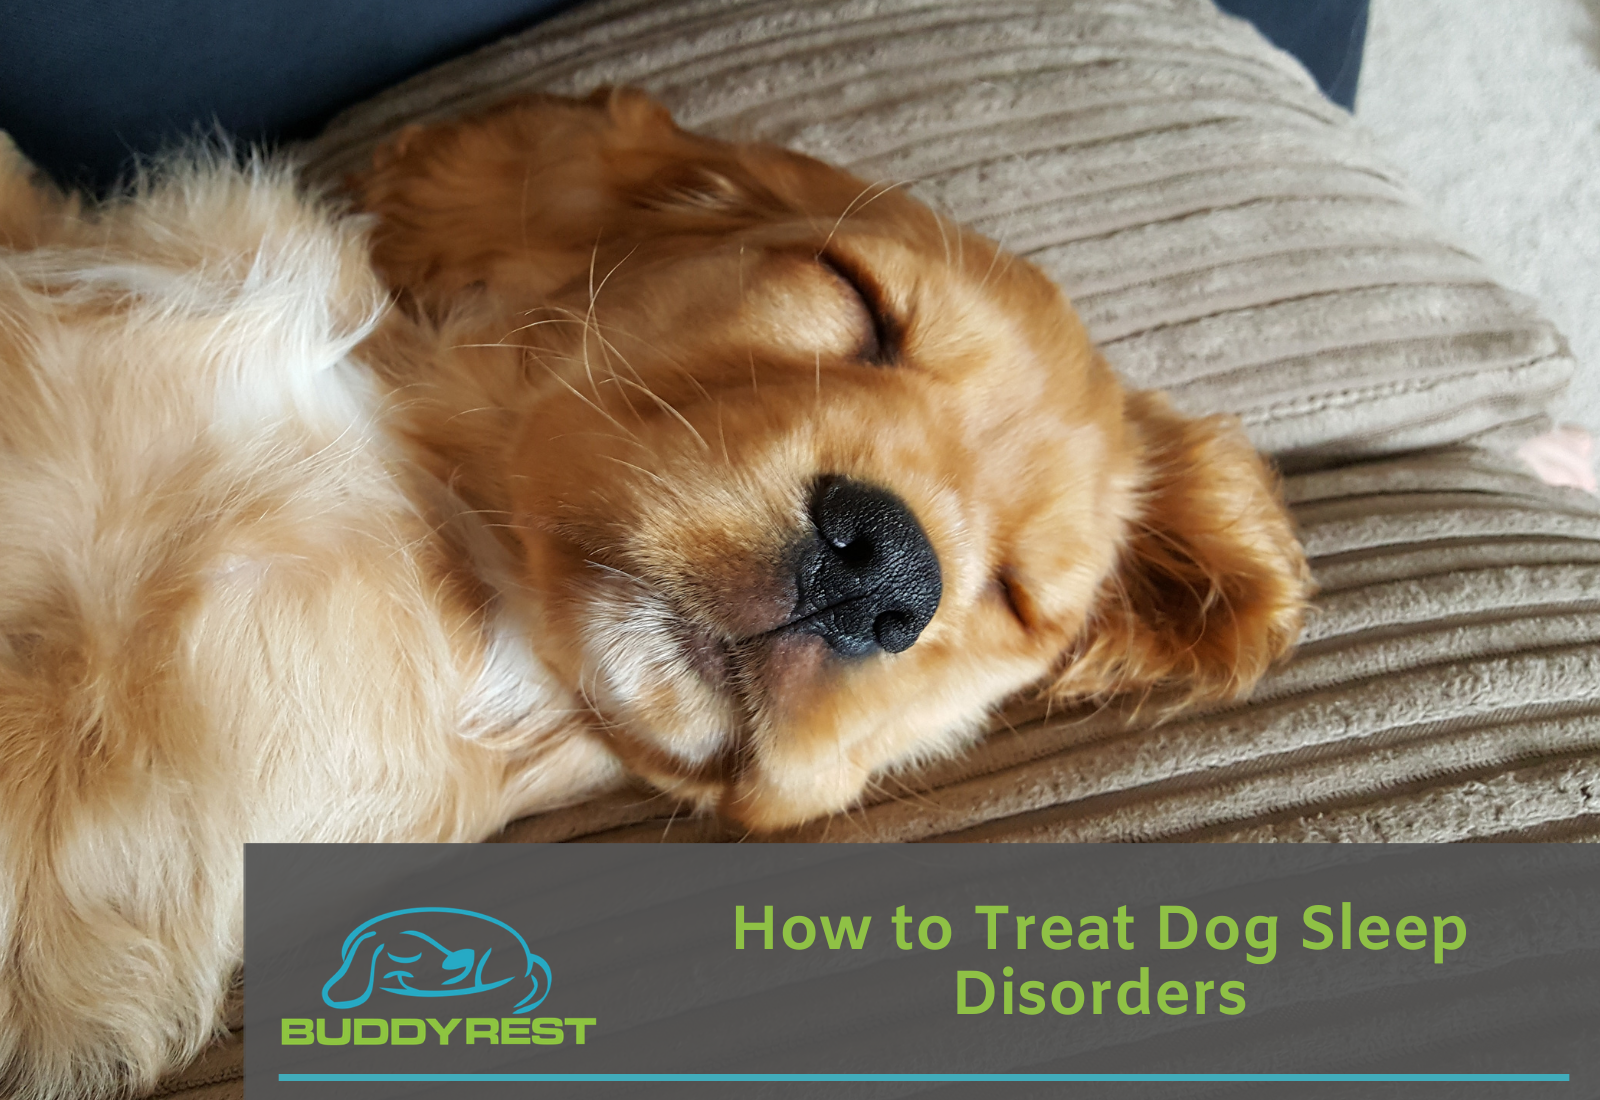 How to Treat Dog Sleep Disorders